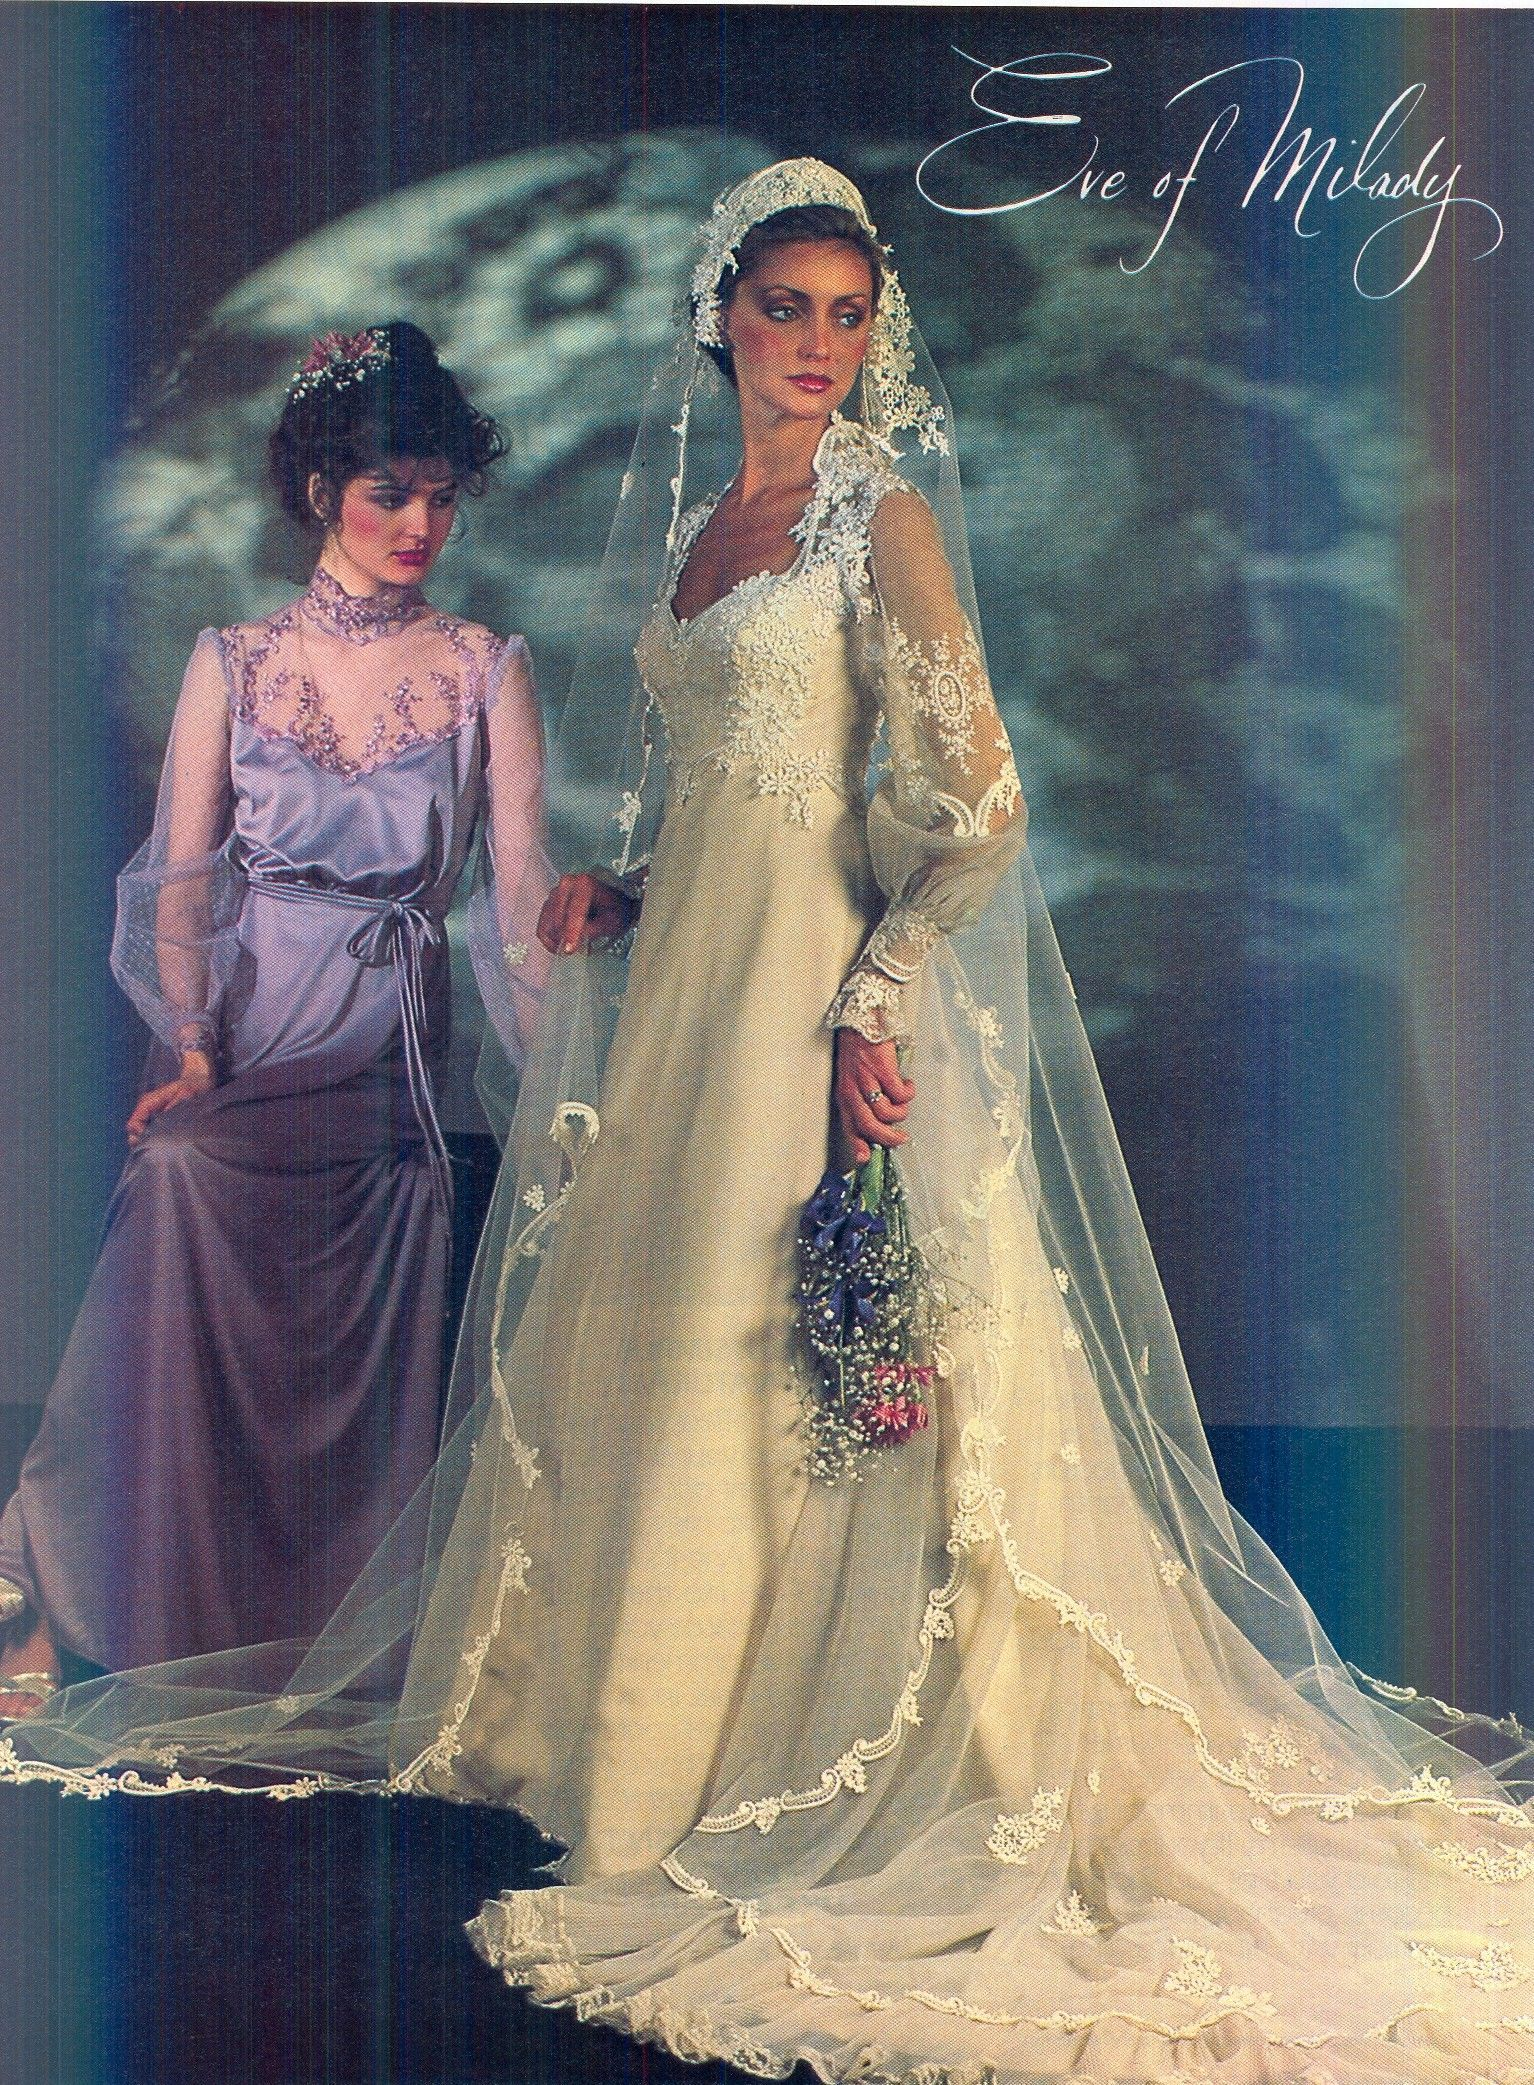 Pin by lessie raffield on vintage wedding gowns in pinterest